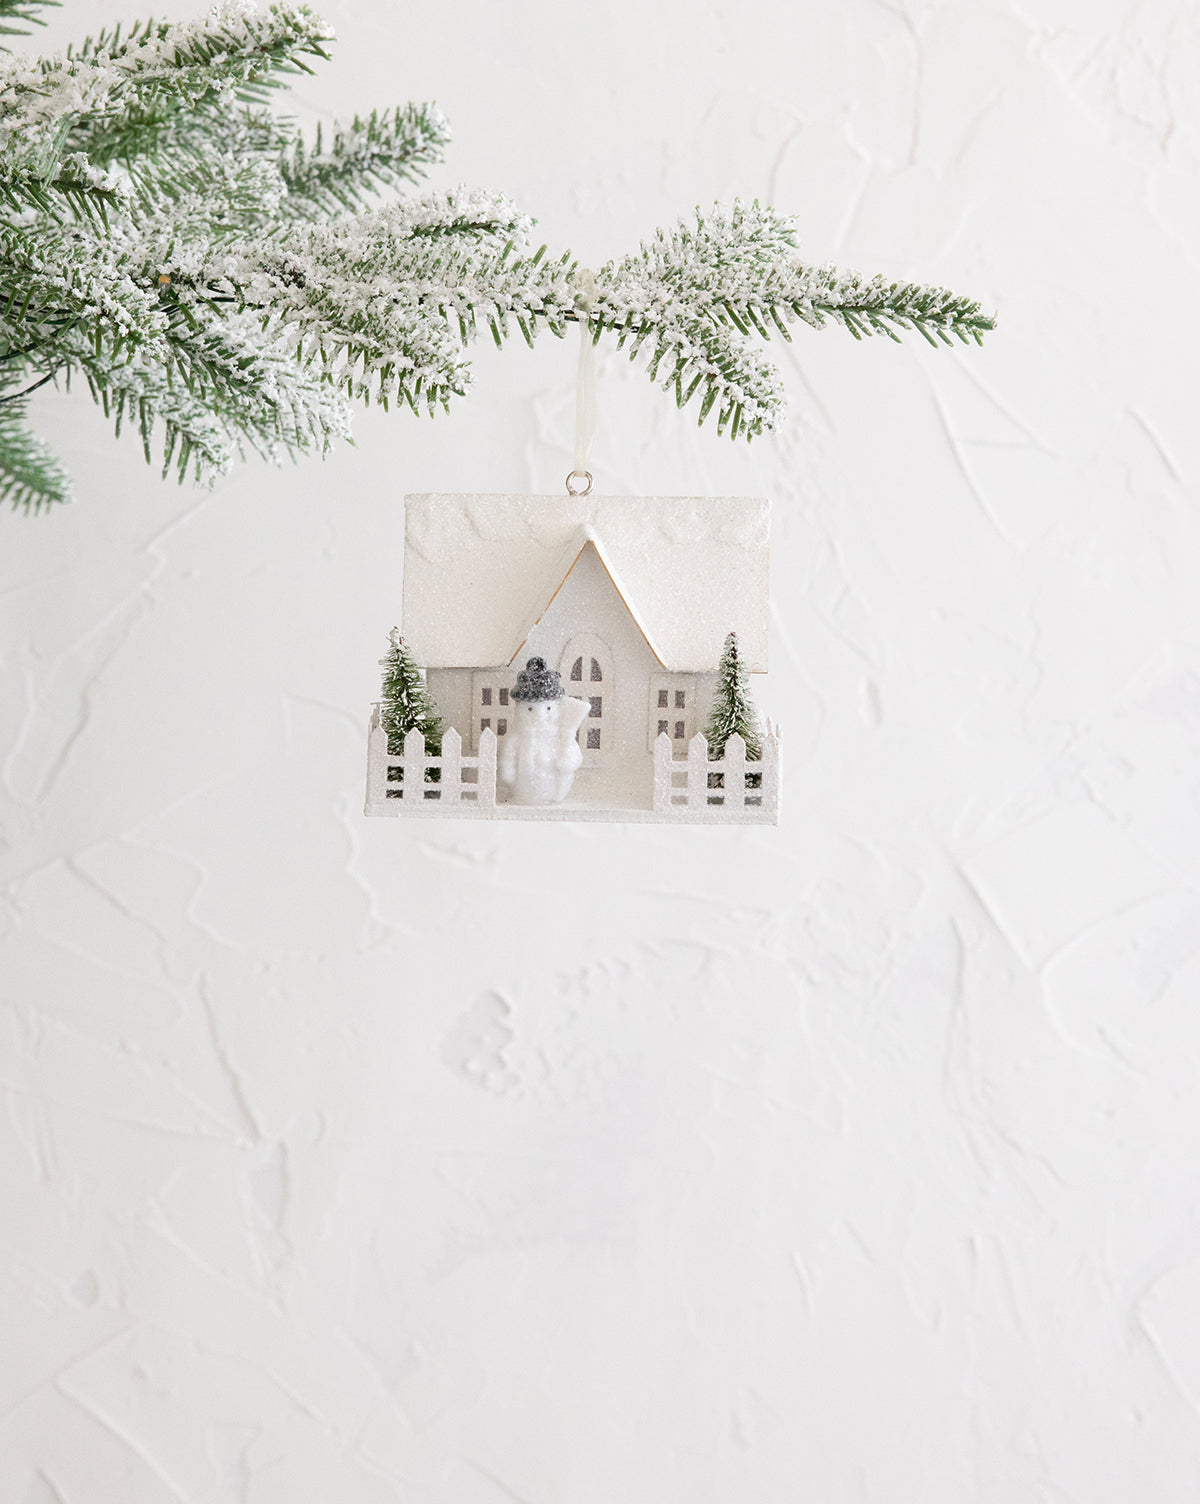 Snowy House Ornament